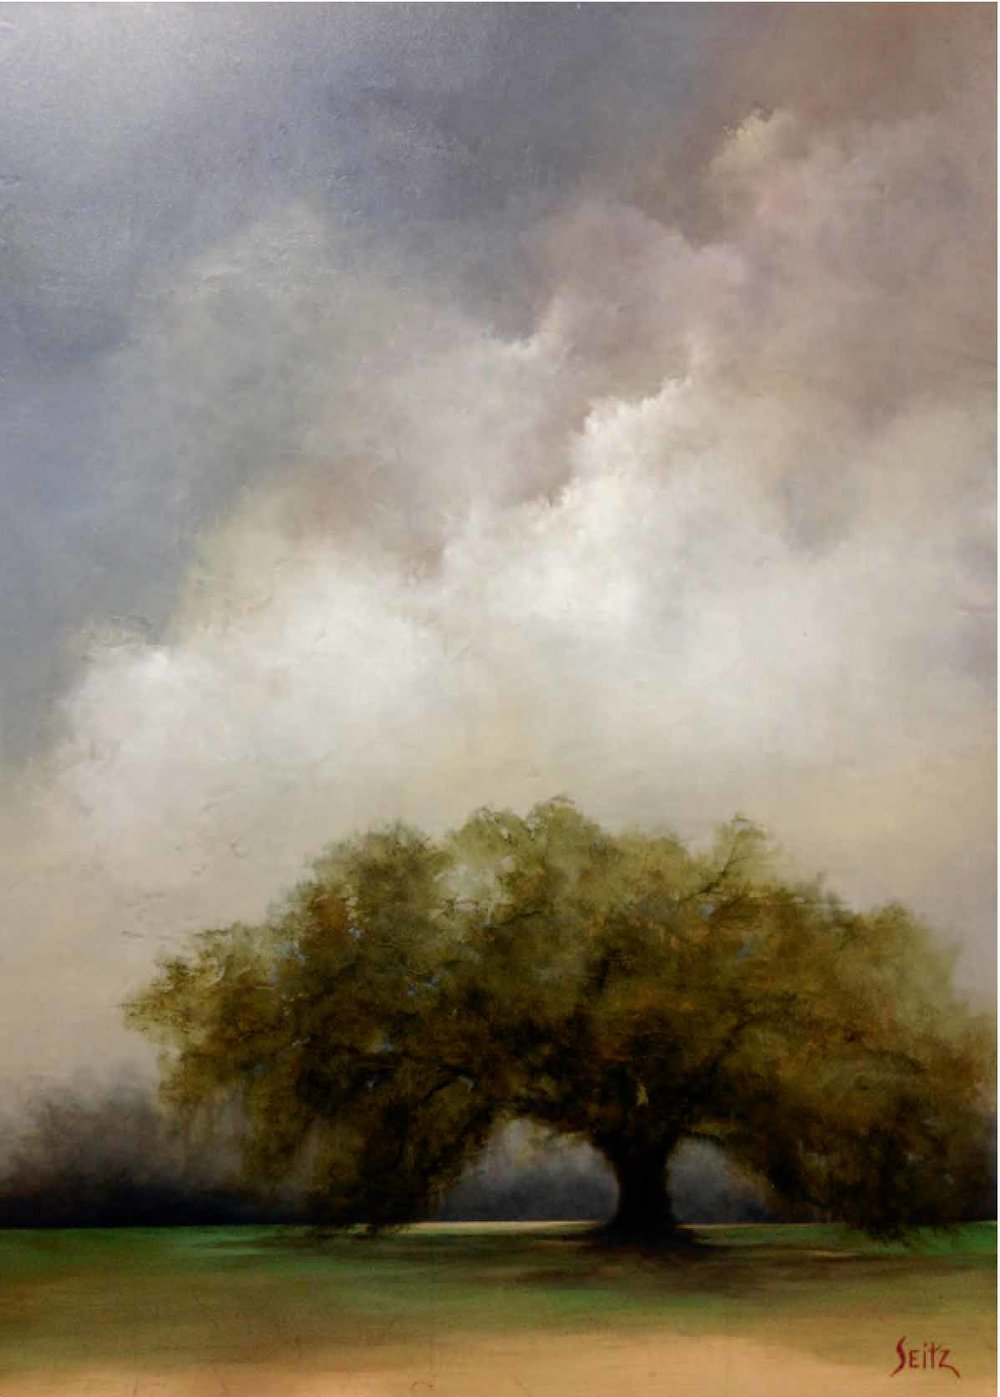 """Weathering the Storms of Life"" by Jim Seitz is the featured artwork this year at Deo Gratias."